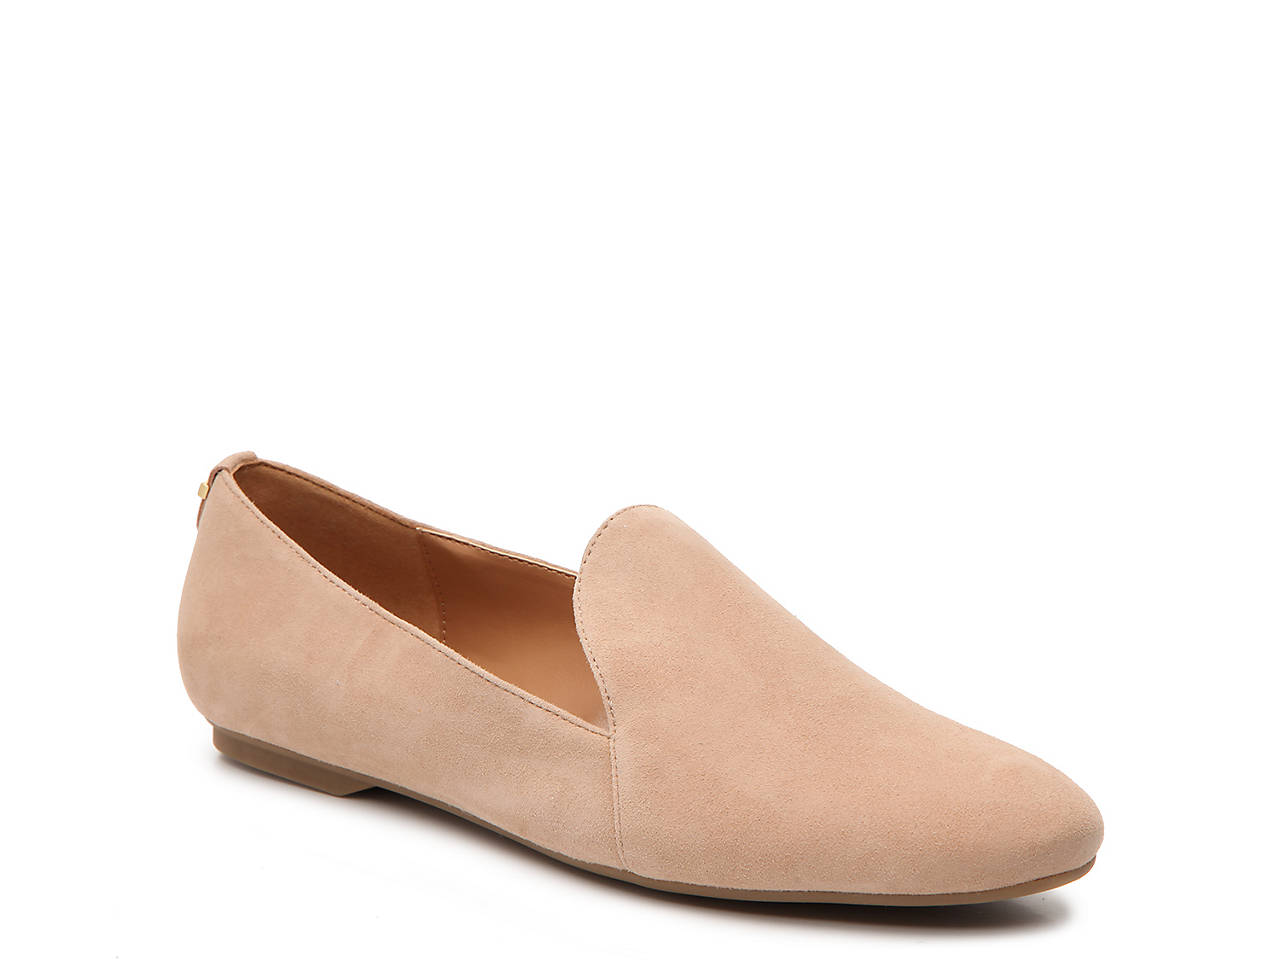 86f55bf23a3bf3 Calvin Klein Orabella Loafer Women s Shoes